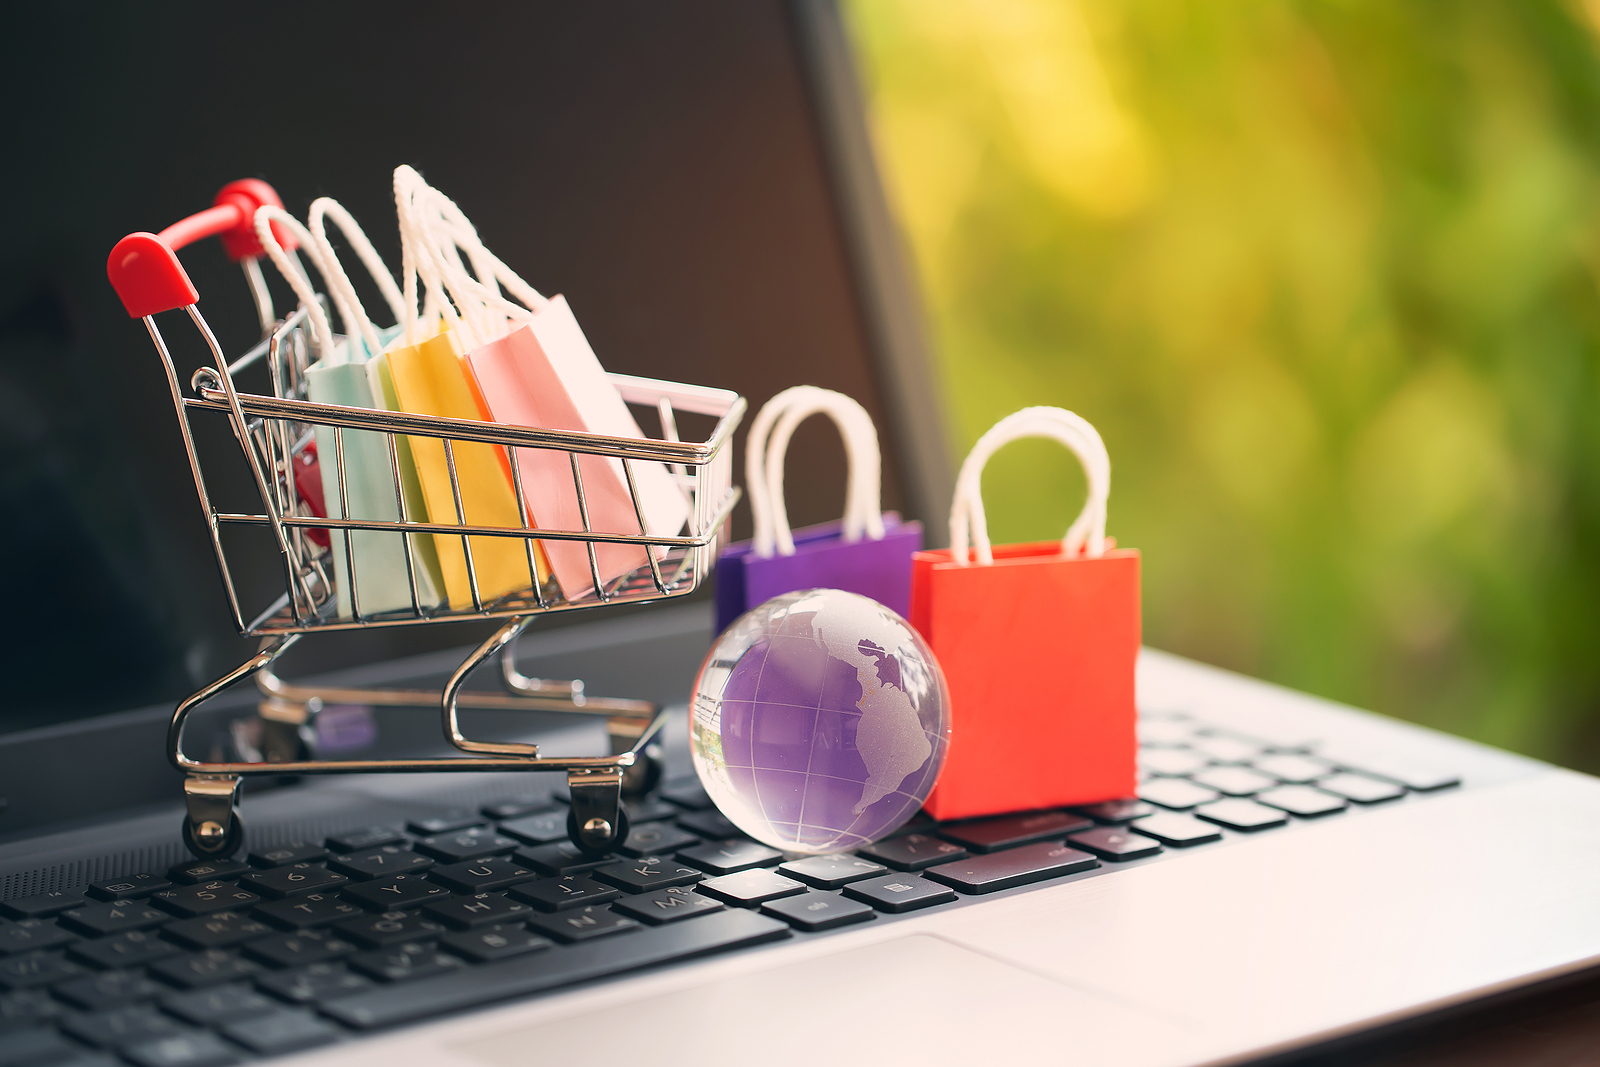 How Can Your Small Business Benefit From eCommerce?